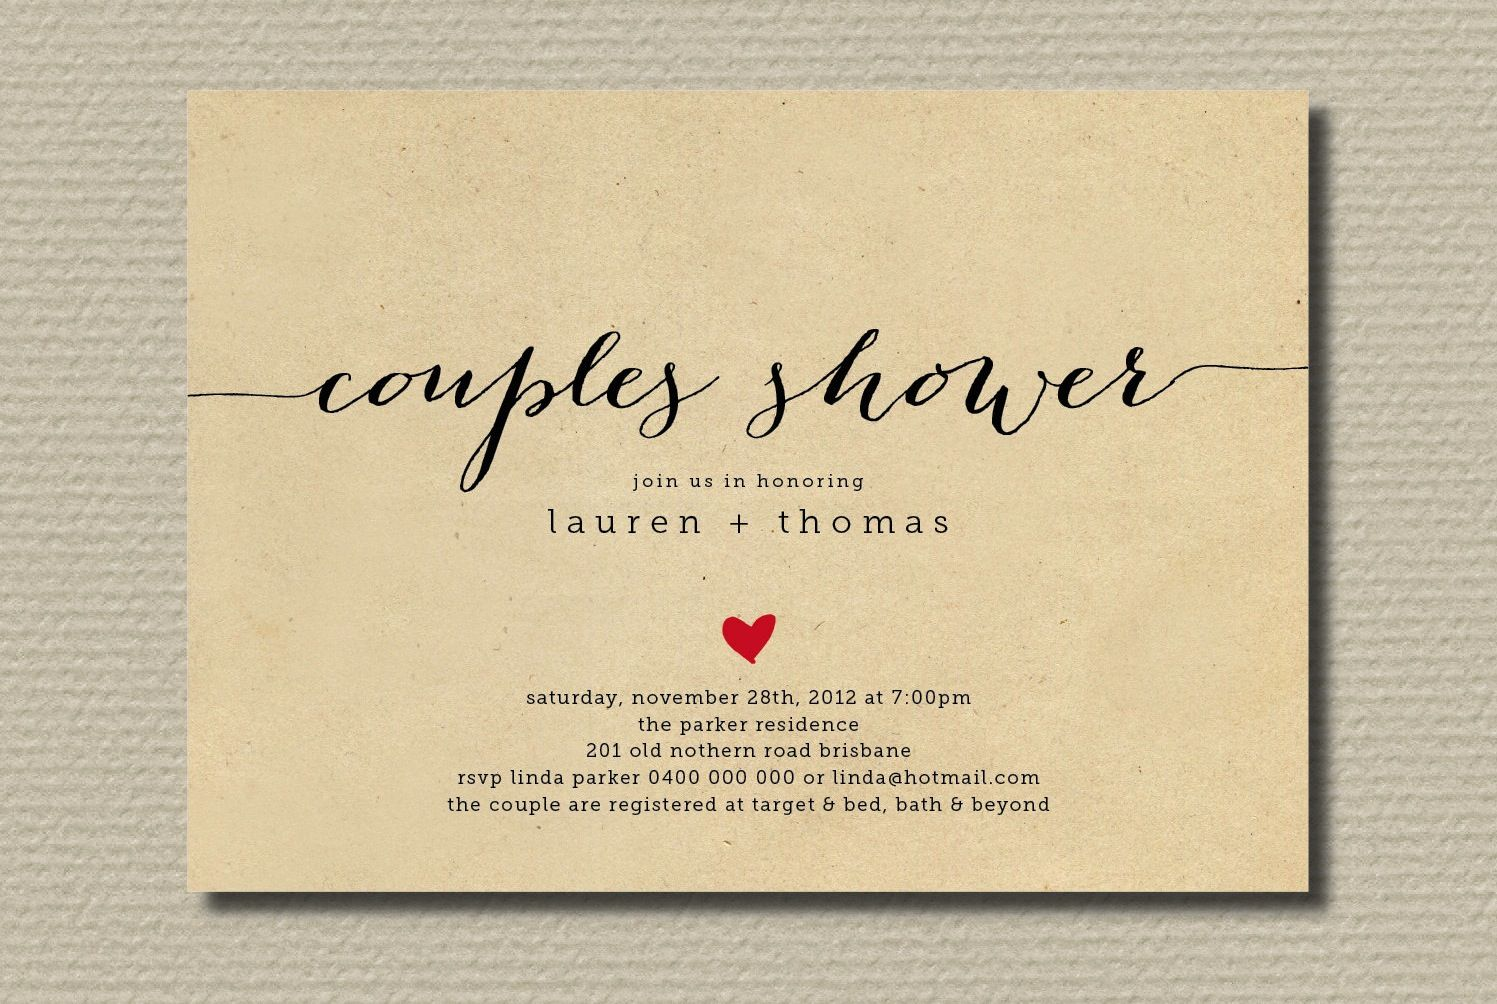 Couples wedding shower invitations simple wedding shower couples wedding shower invitations simple wedding shower invitation couples with heart onewed filmwisefo Image collections